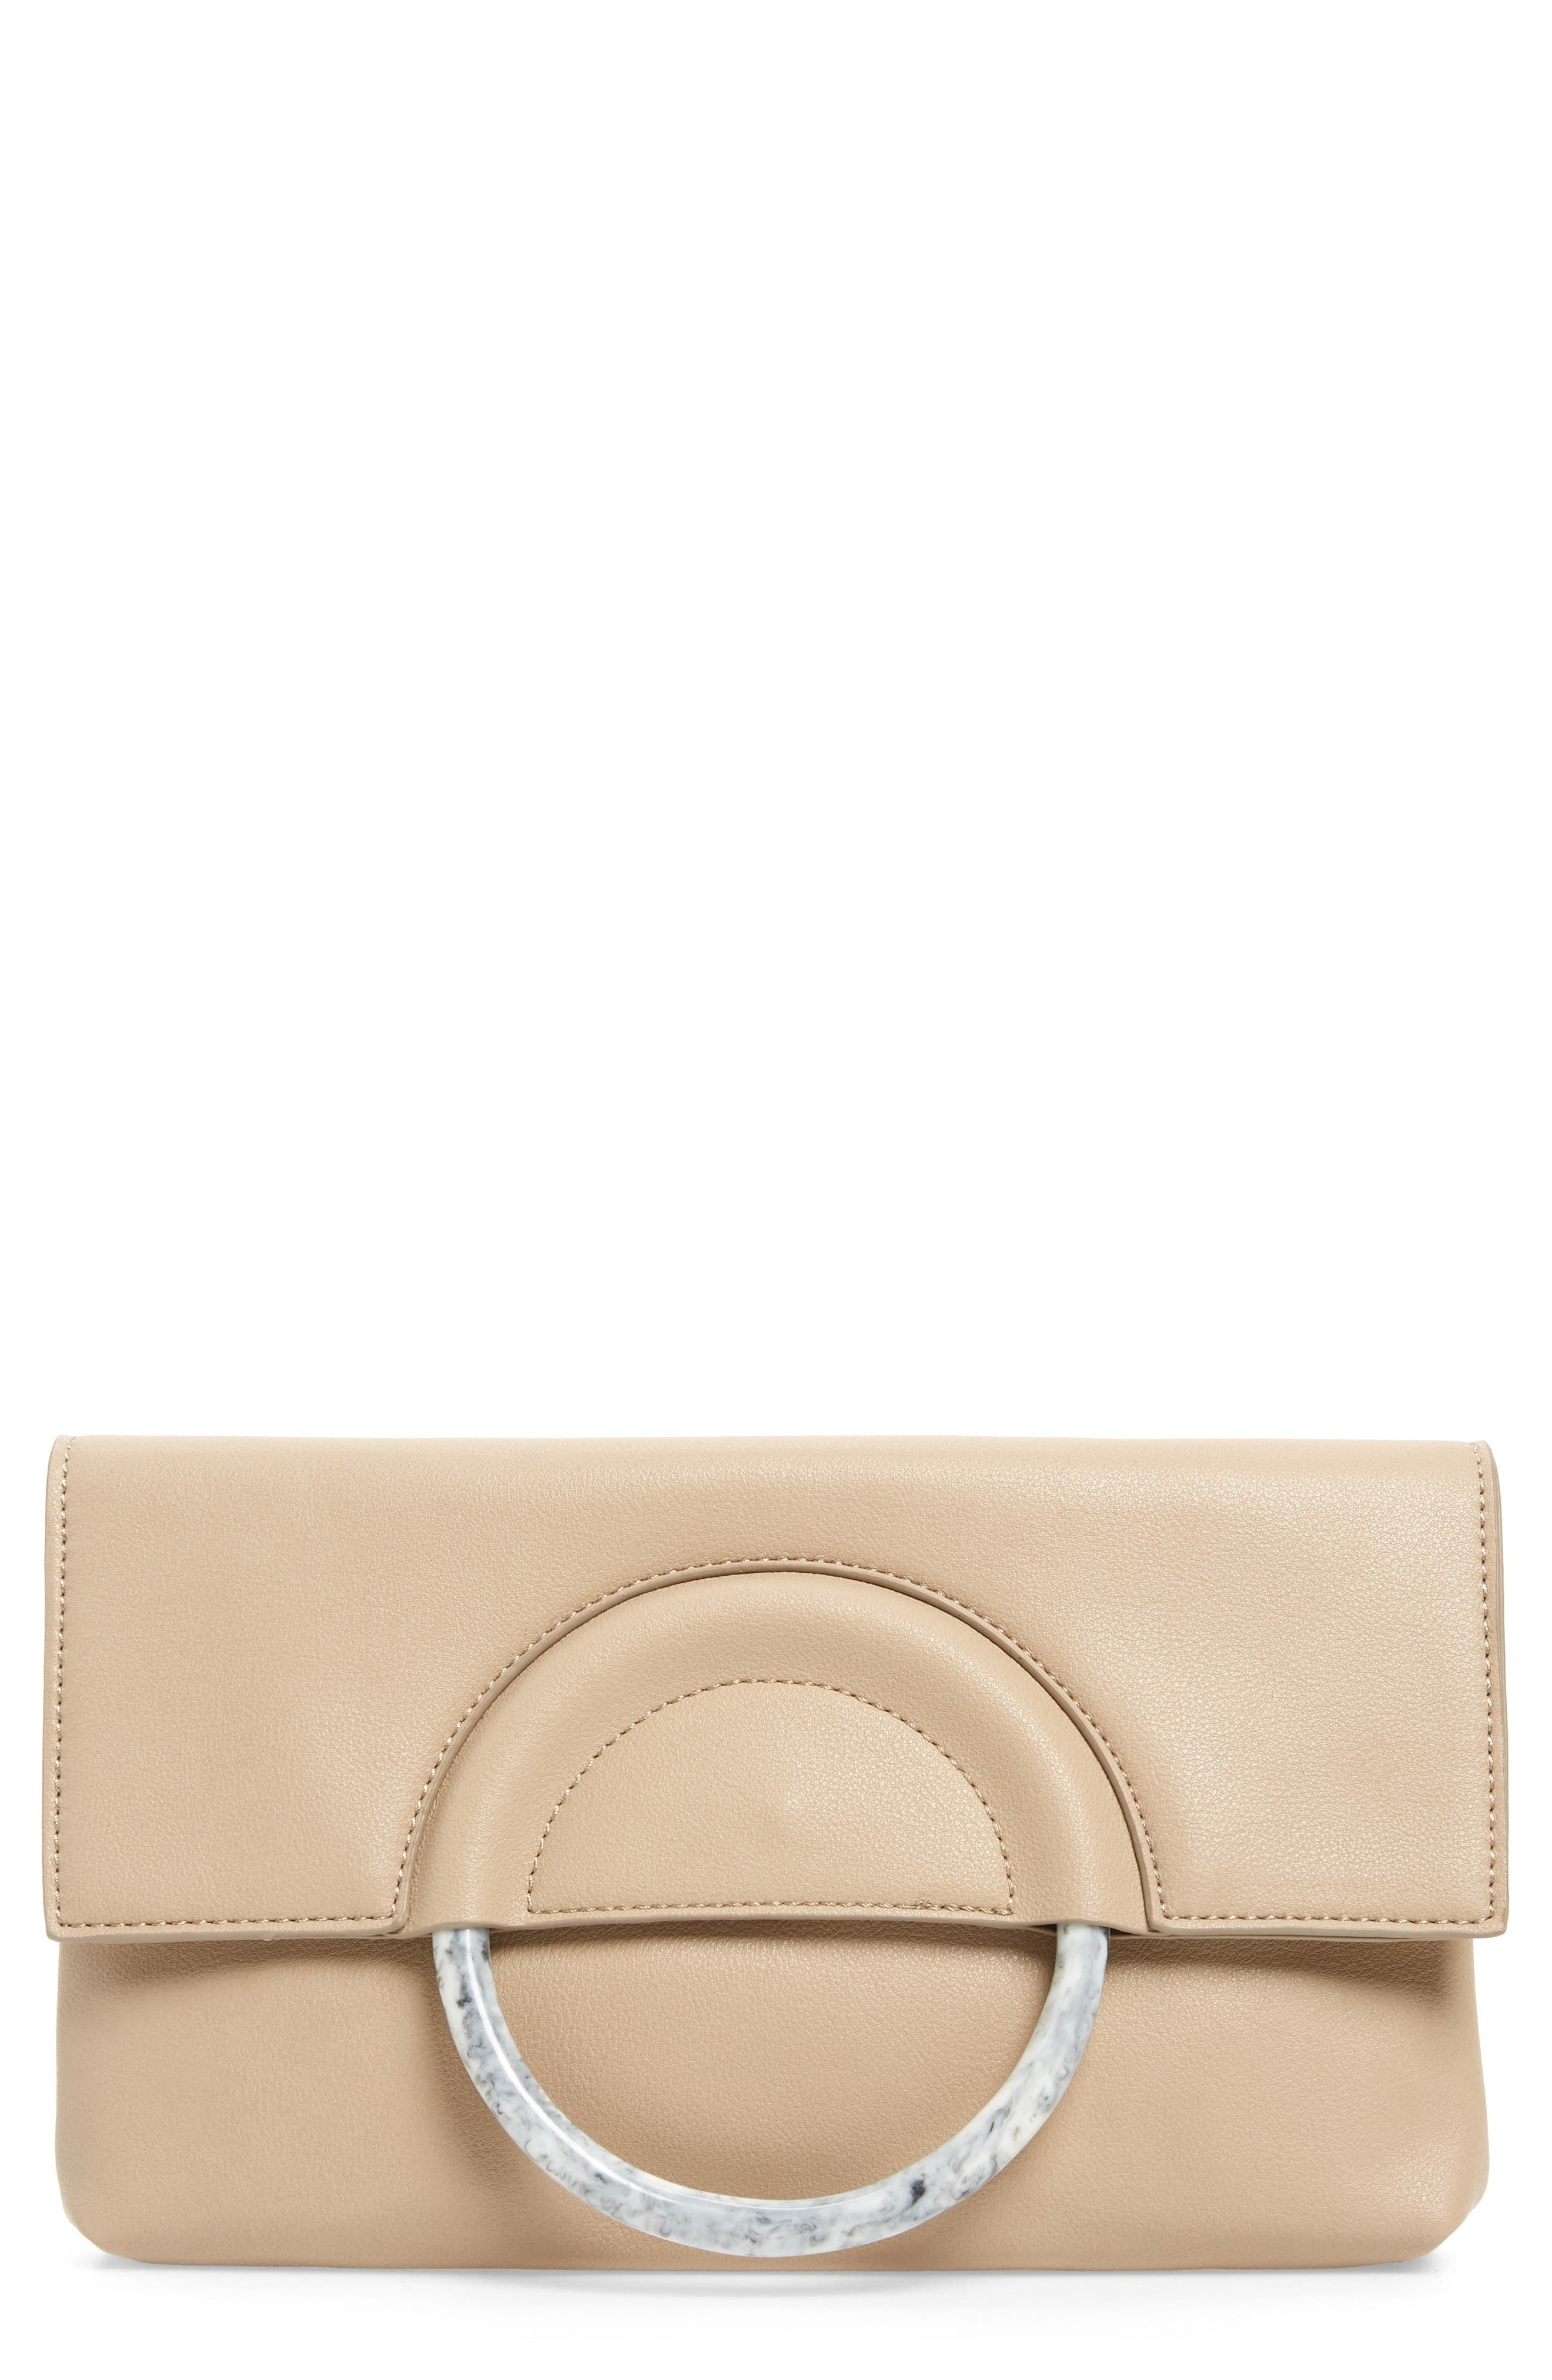 LEITH, Resin Handle Clutch, Main thumbnail 1, color, TAUPE/ IVORY